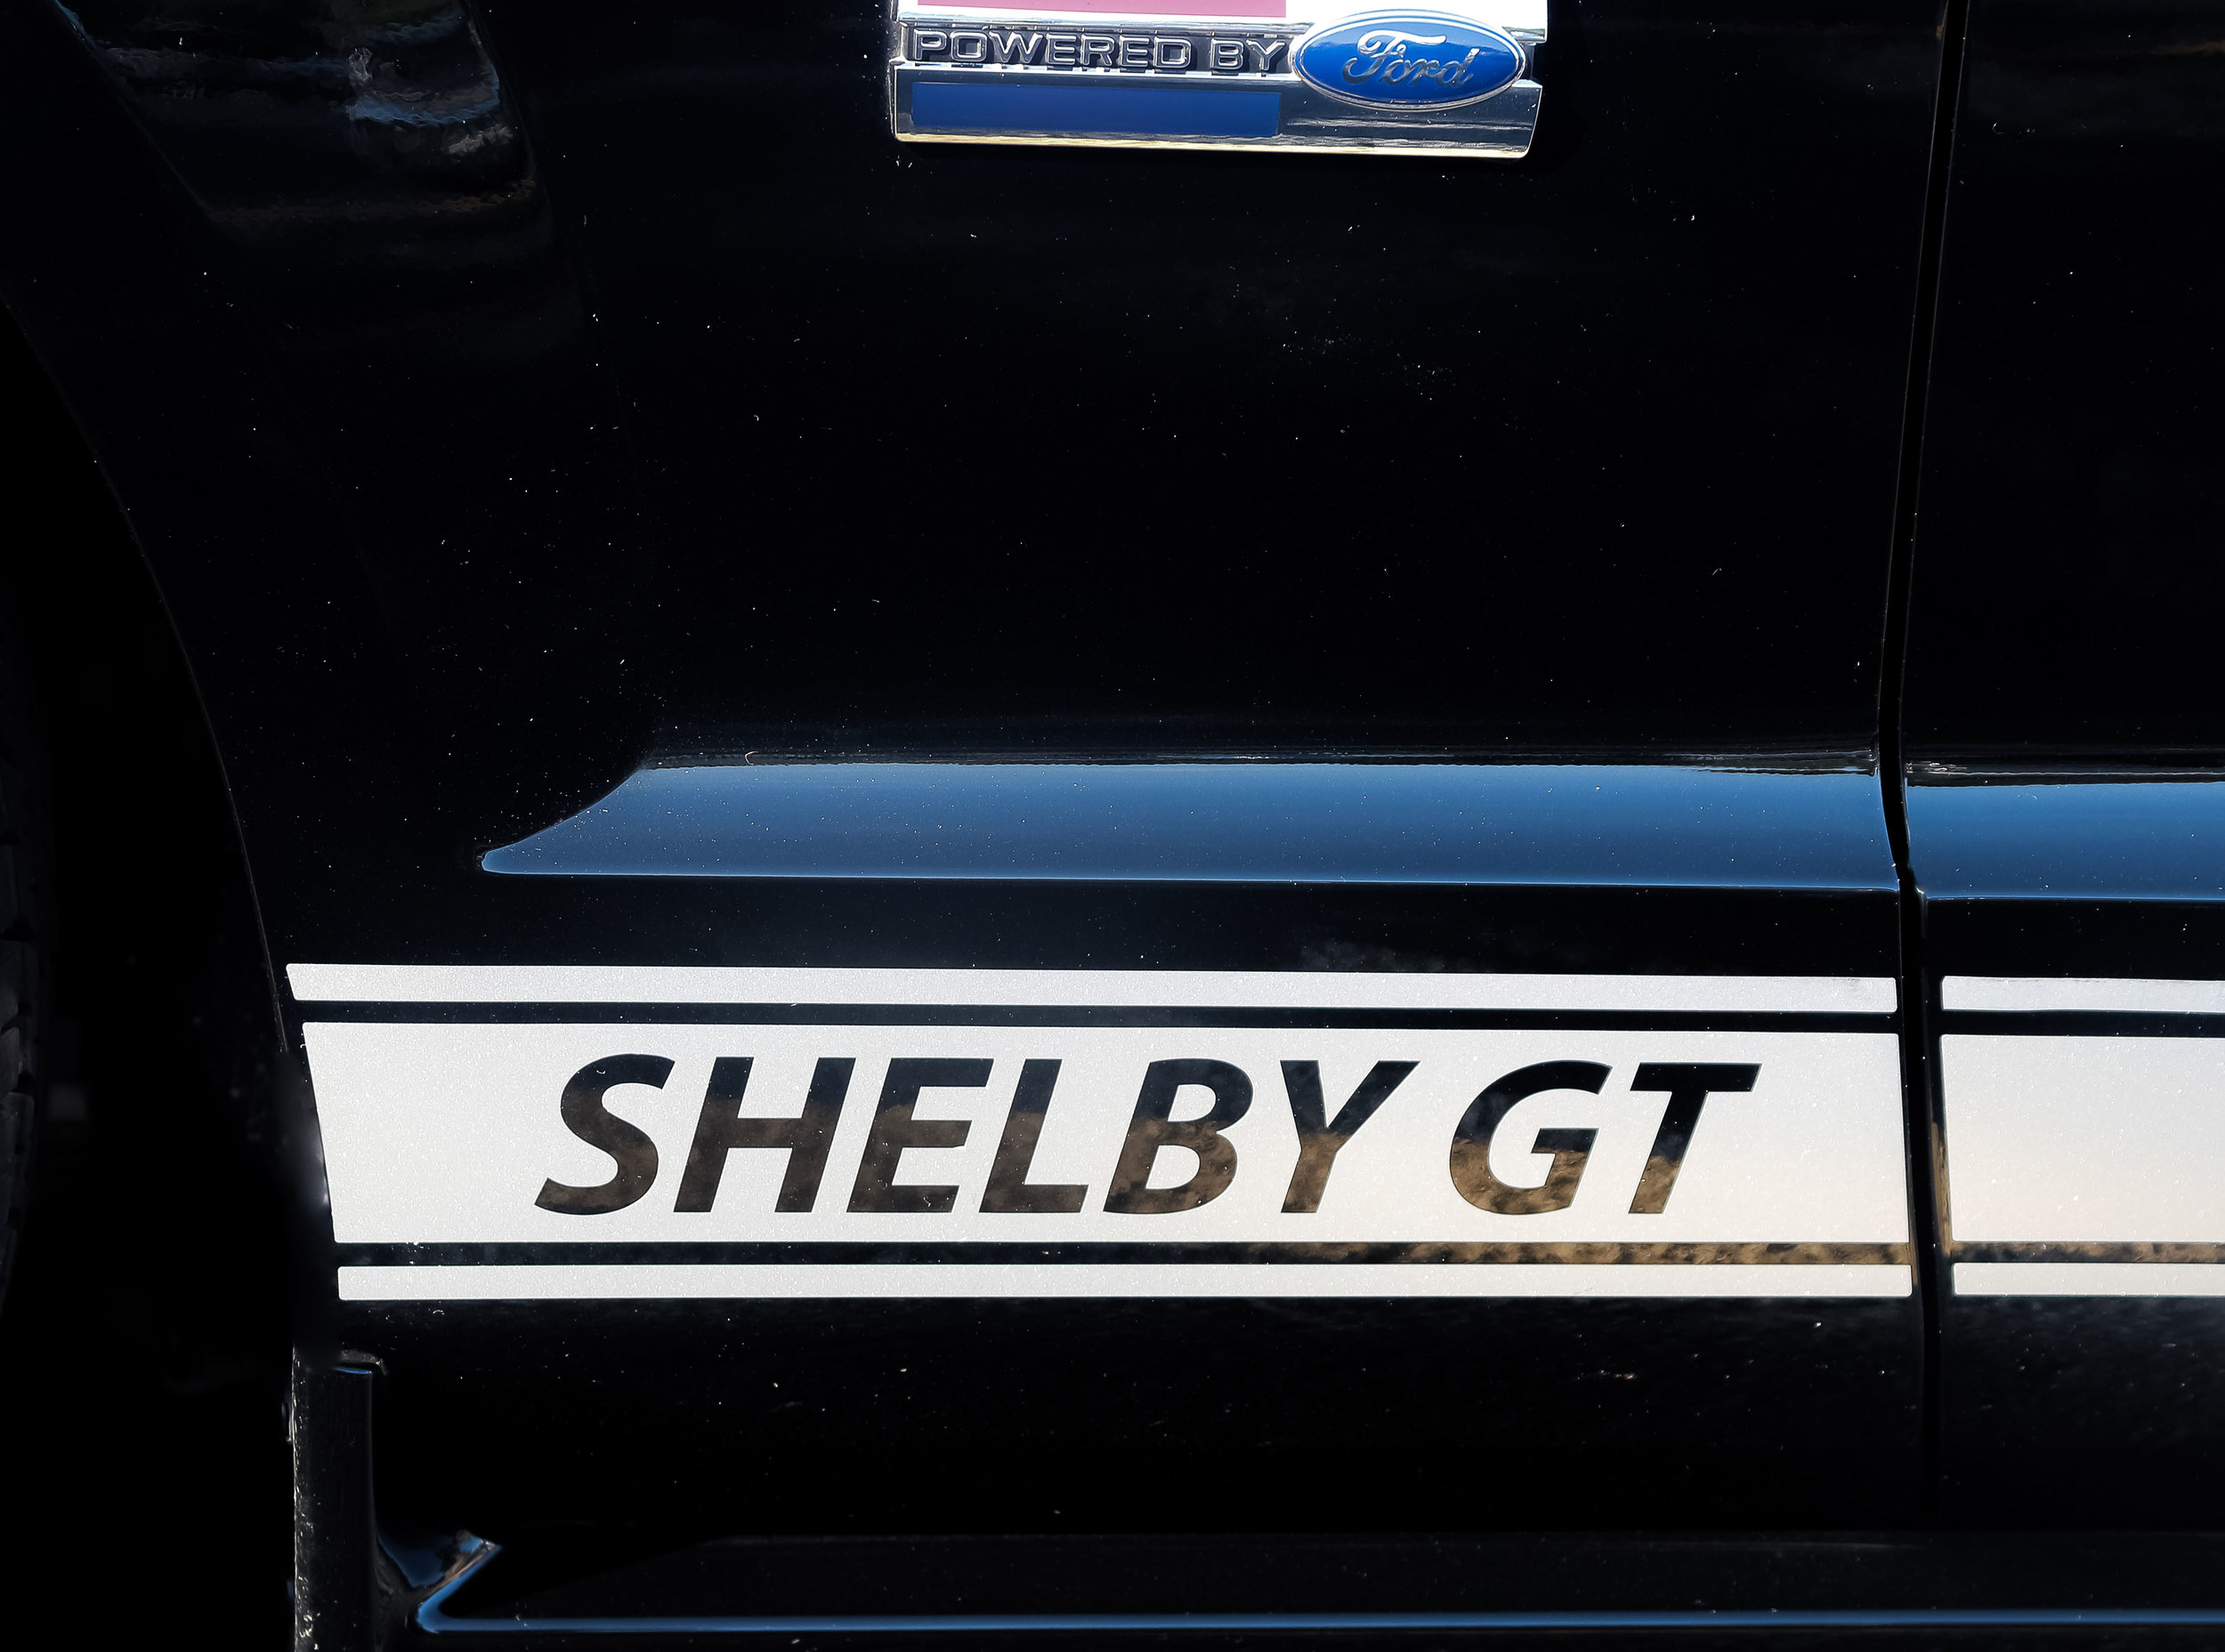 Shelby - Dan Ford